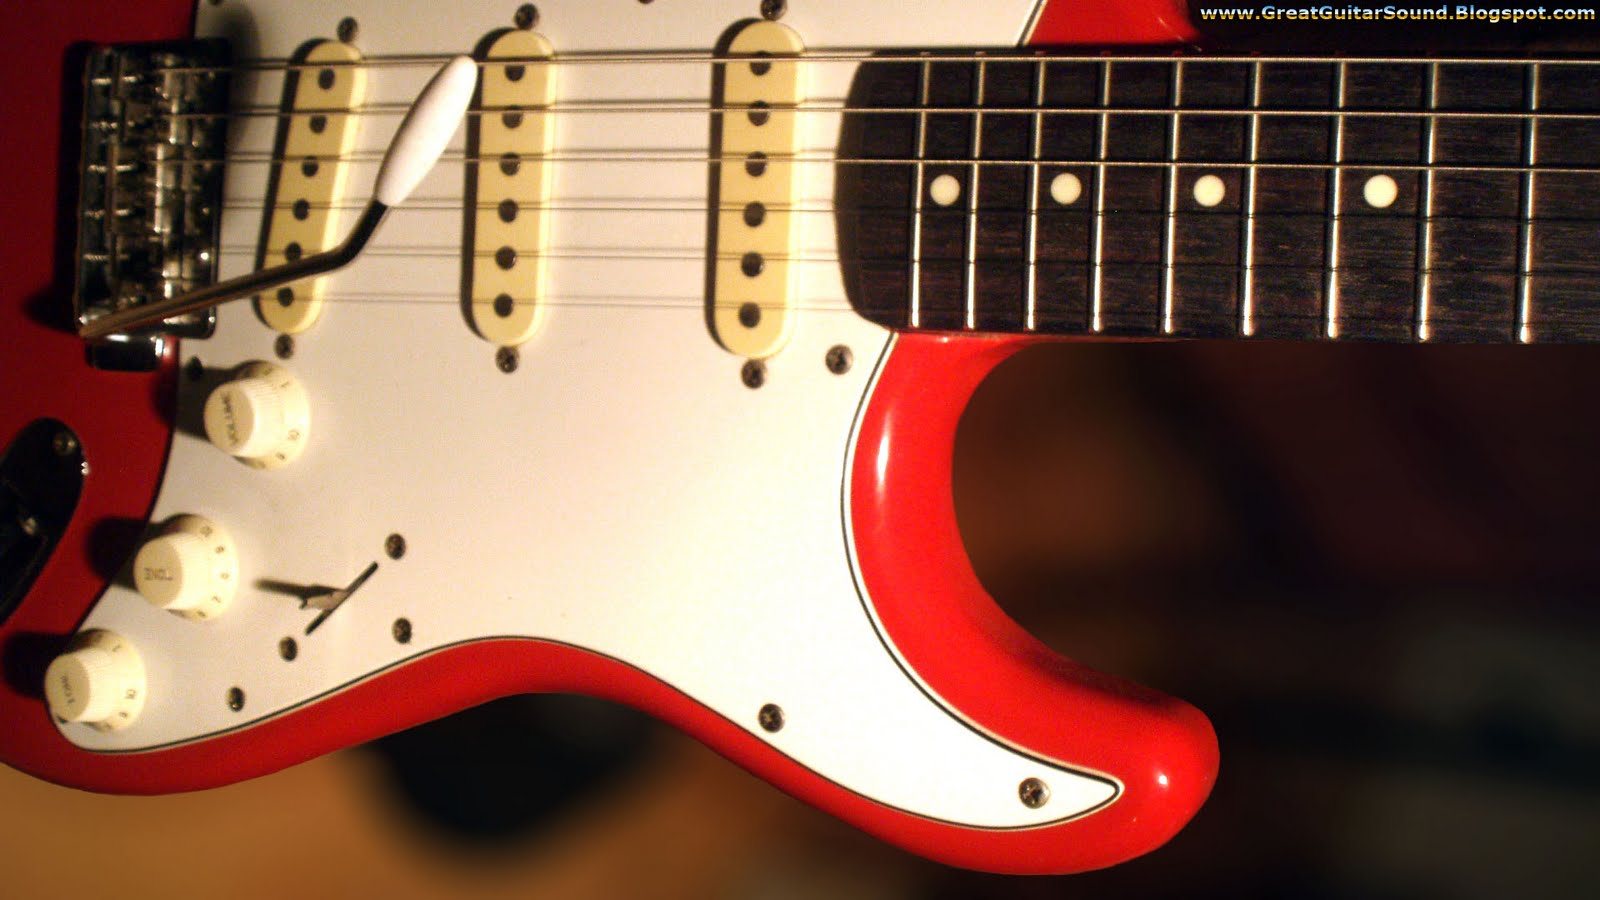 Guitar wallpaper 3d effect fender stratocaster electric - Fender stratocaster wallpaper hd ...